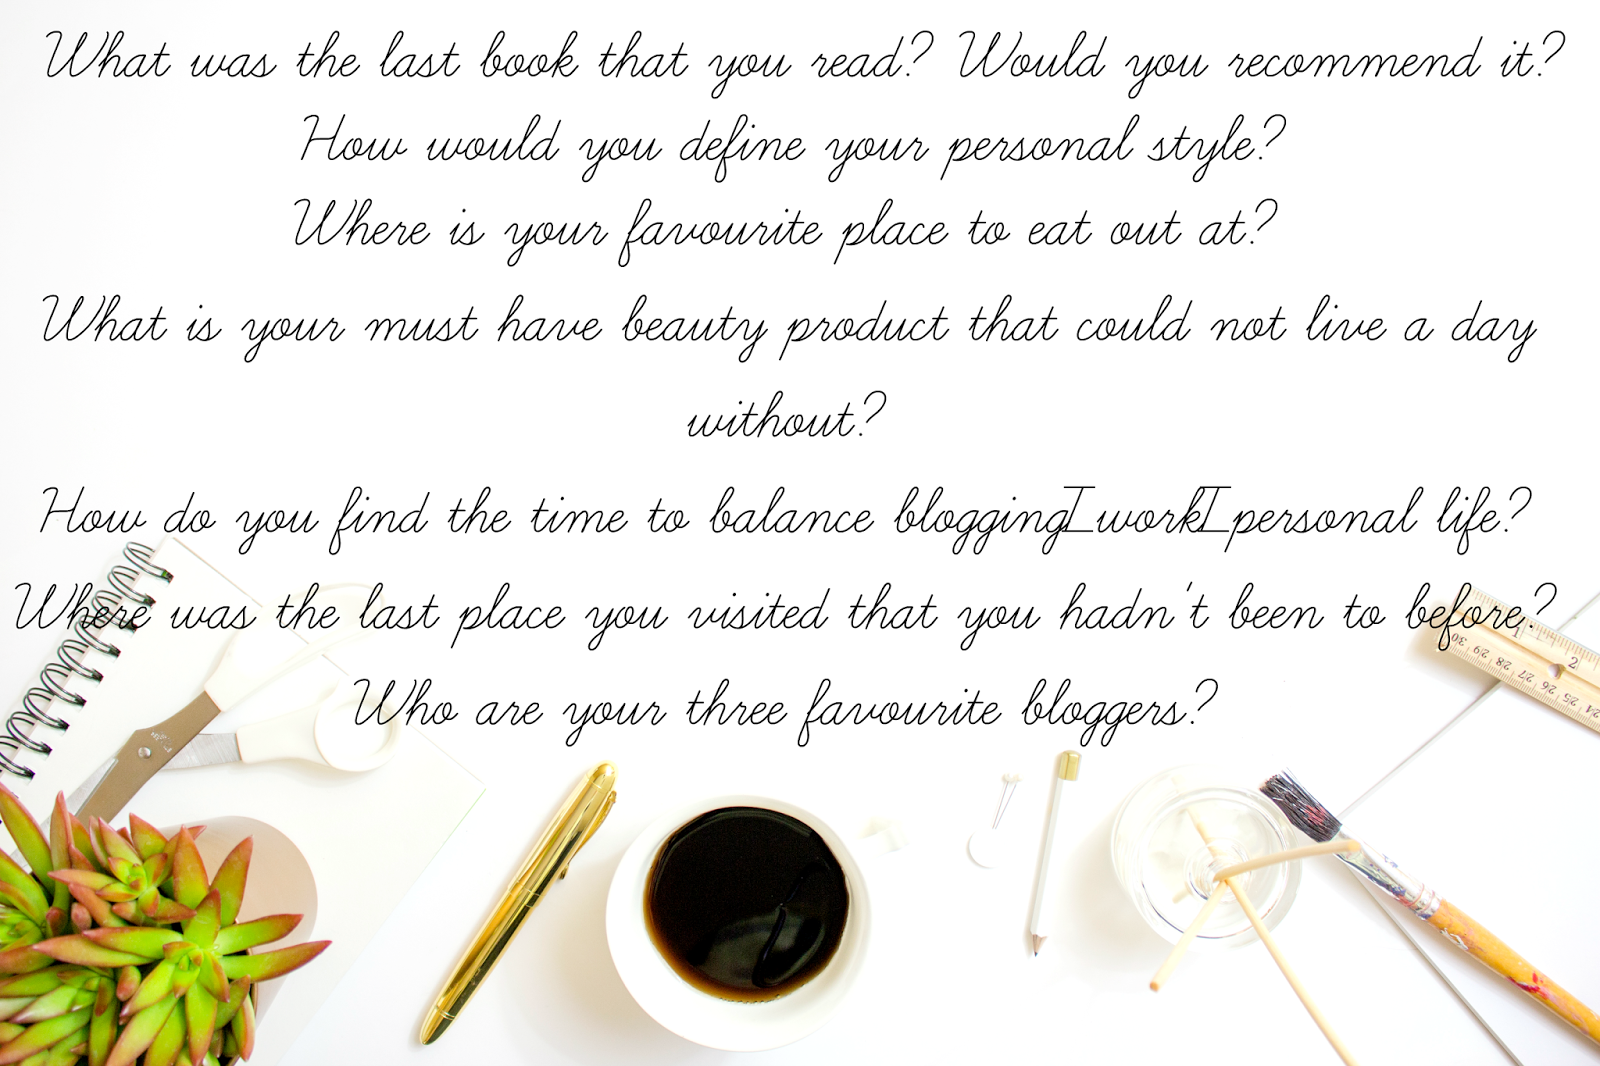 The real neat blog award   7 Questions   Love, Maisie